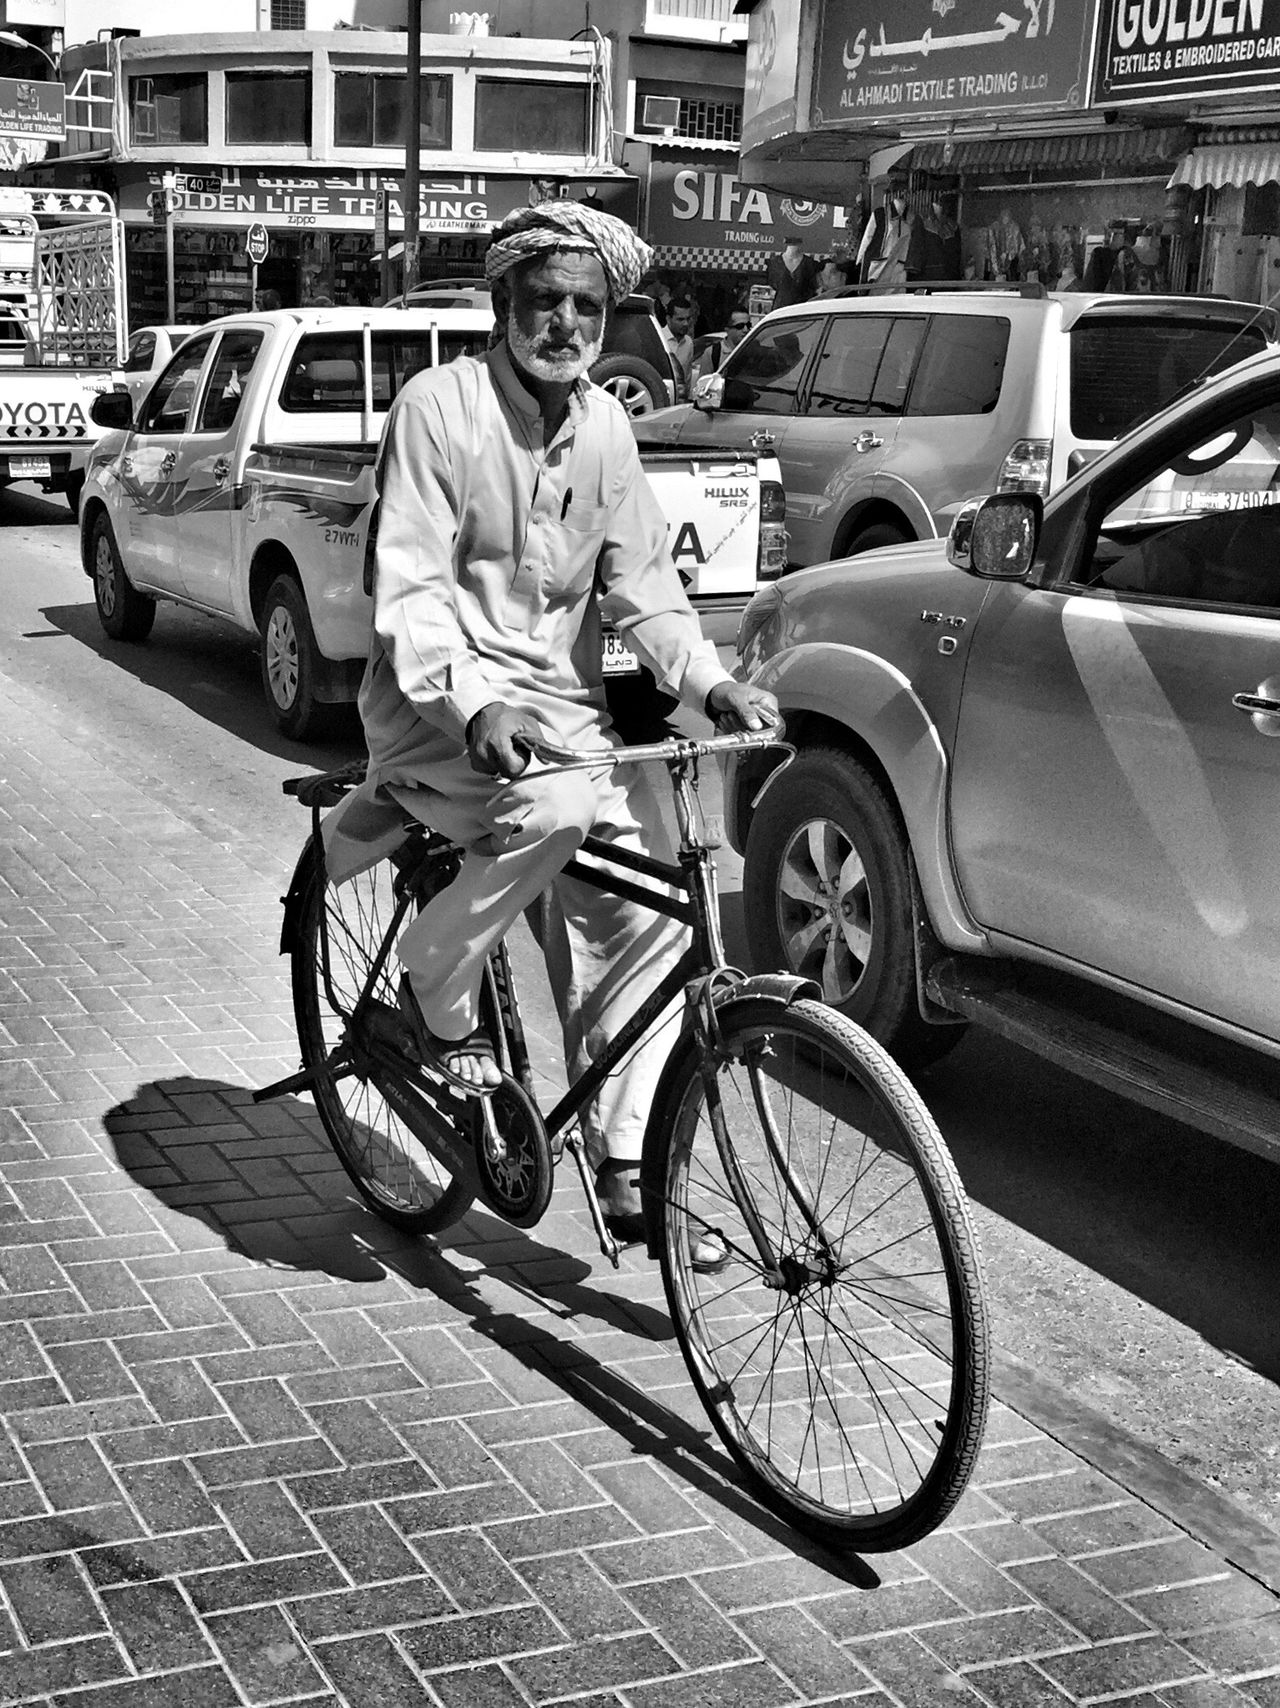 People And Places Transportation Mode Of Transport Land Vehicle One Person One Man Only Men People City Portrait Real People City Life Cityphotography Cityexplorer Blackandwhite Photography Blackandwhite Black & White Black And White Collection